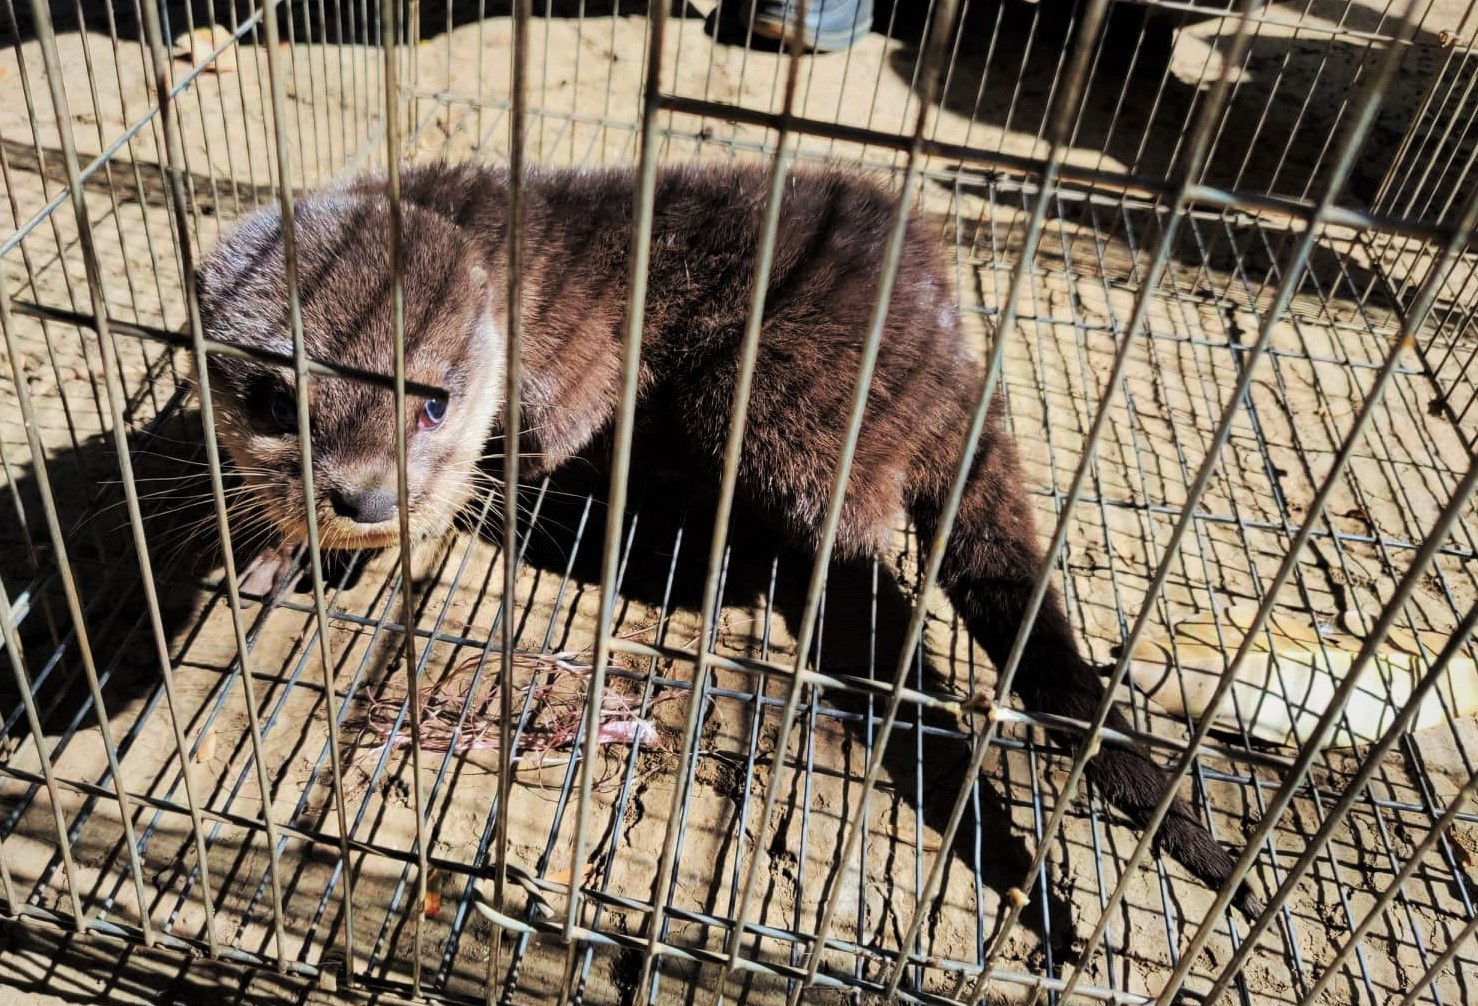 Smooth-coated otter rescue operation Otter rescued from Wildlife Trade